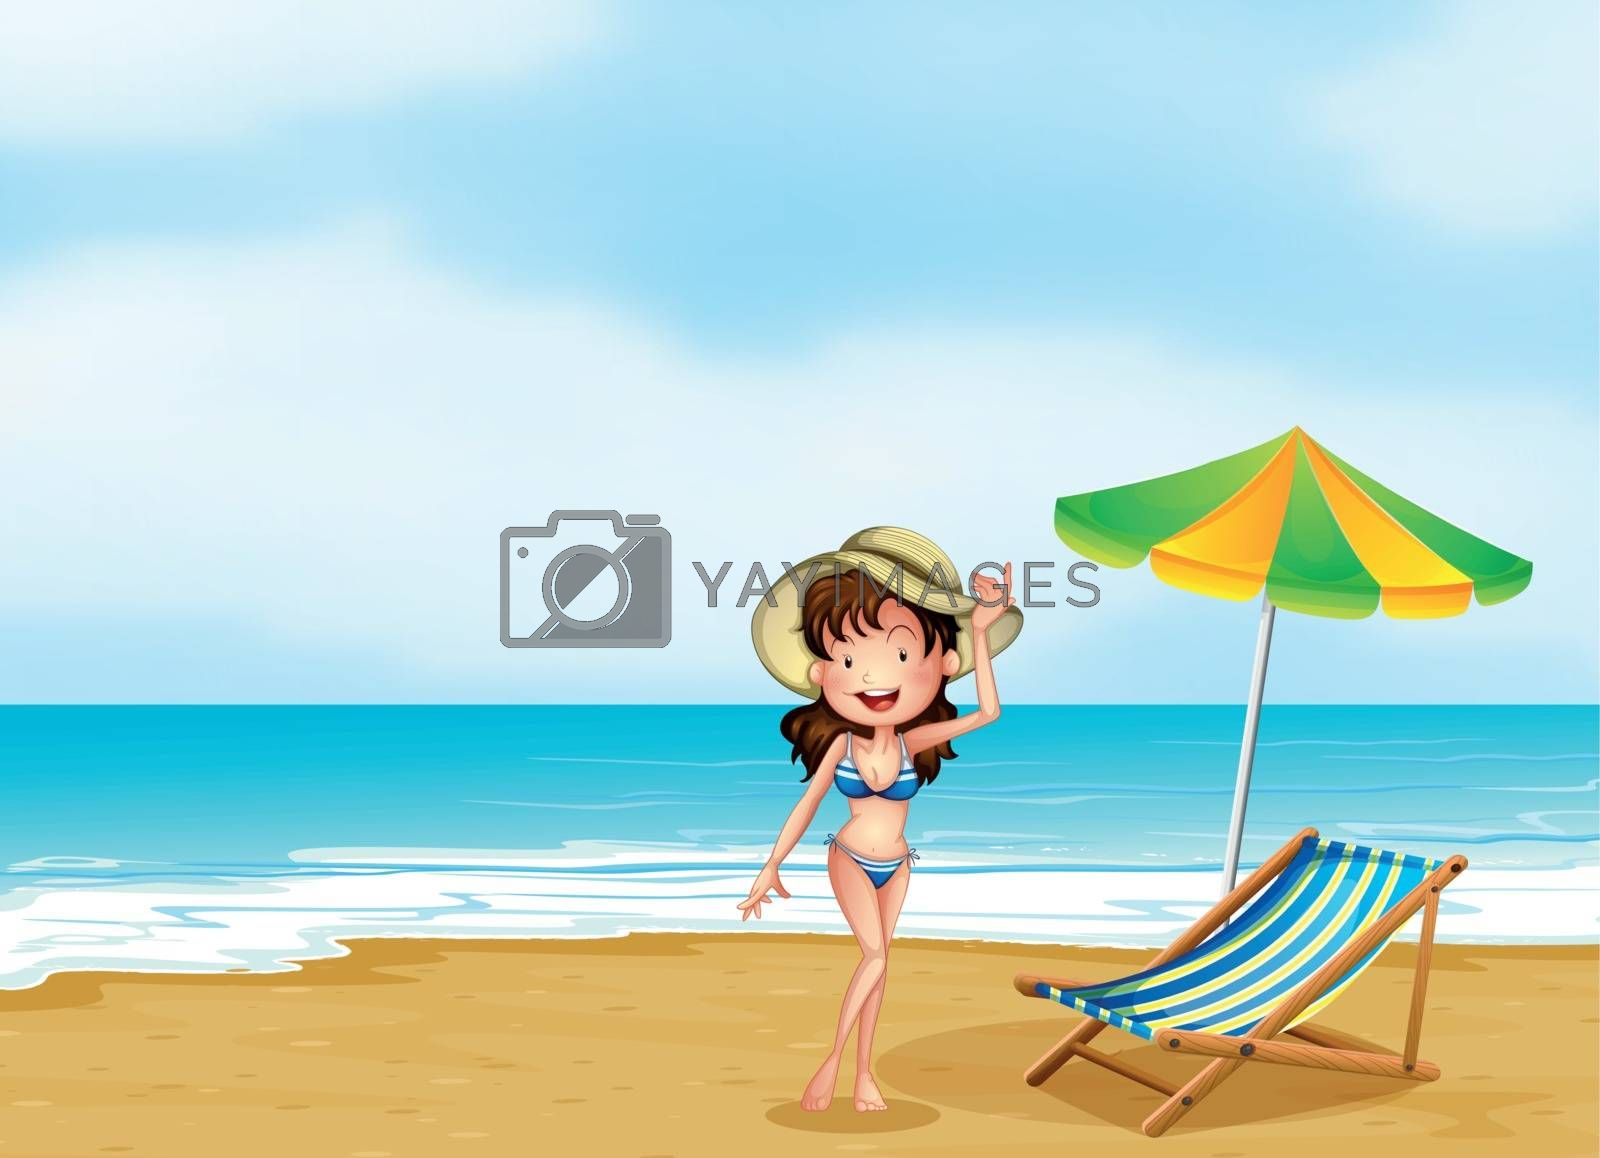 Illustration of a woman at the beach with an umbrella and a chair